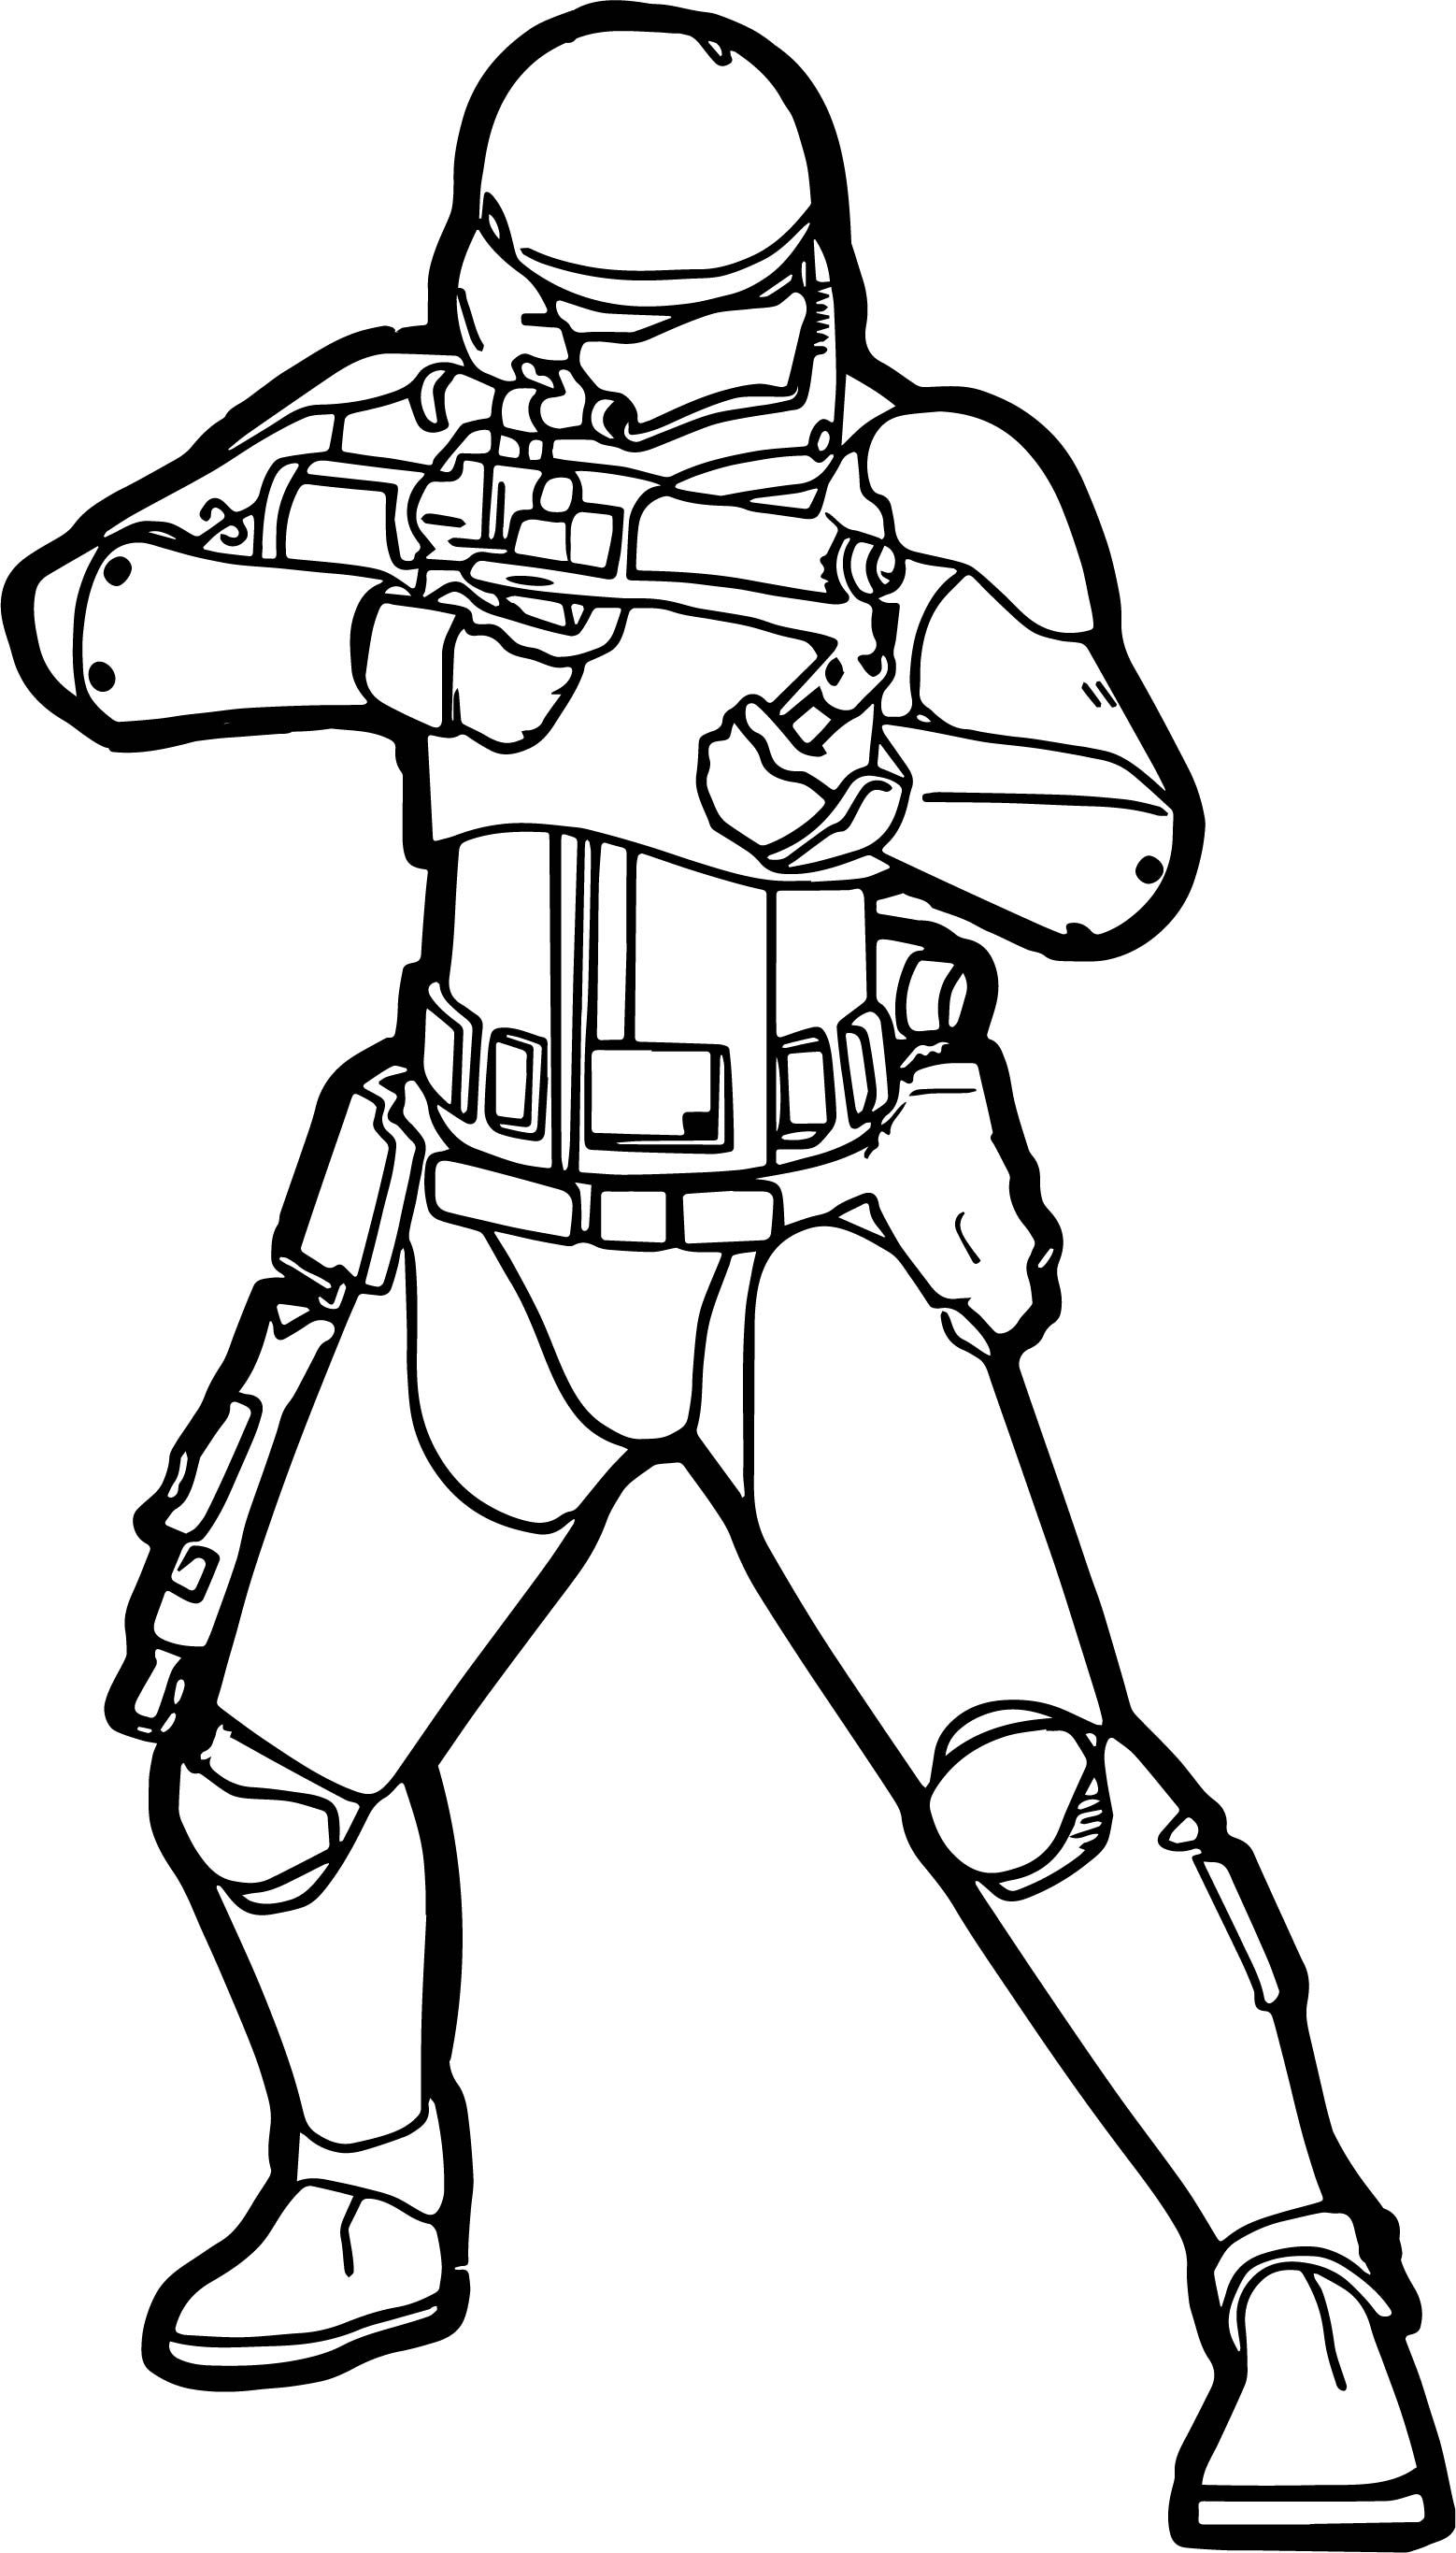 Cool Star Wars The Force Awakens Stormtrooper Coloring Page